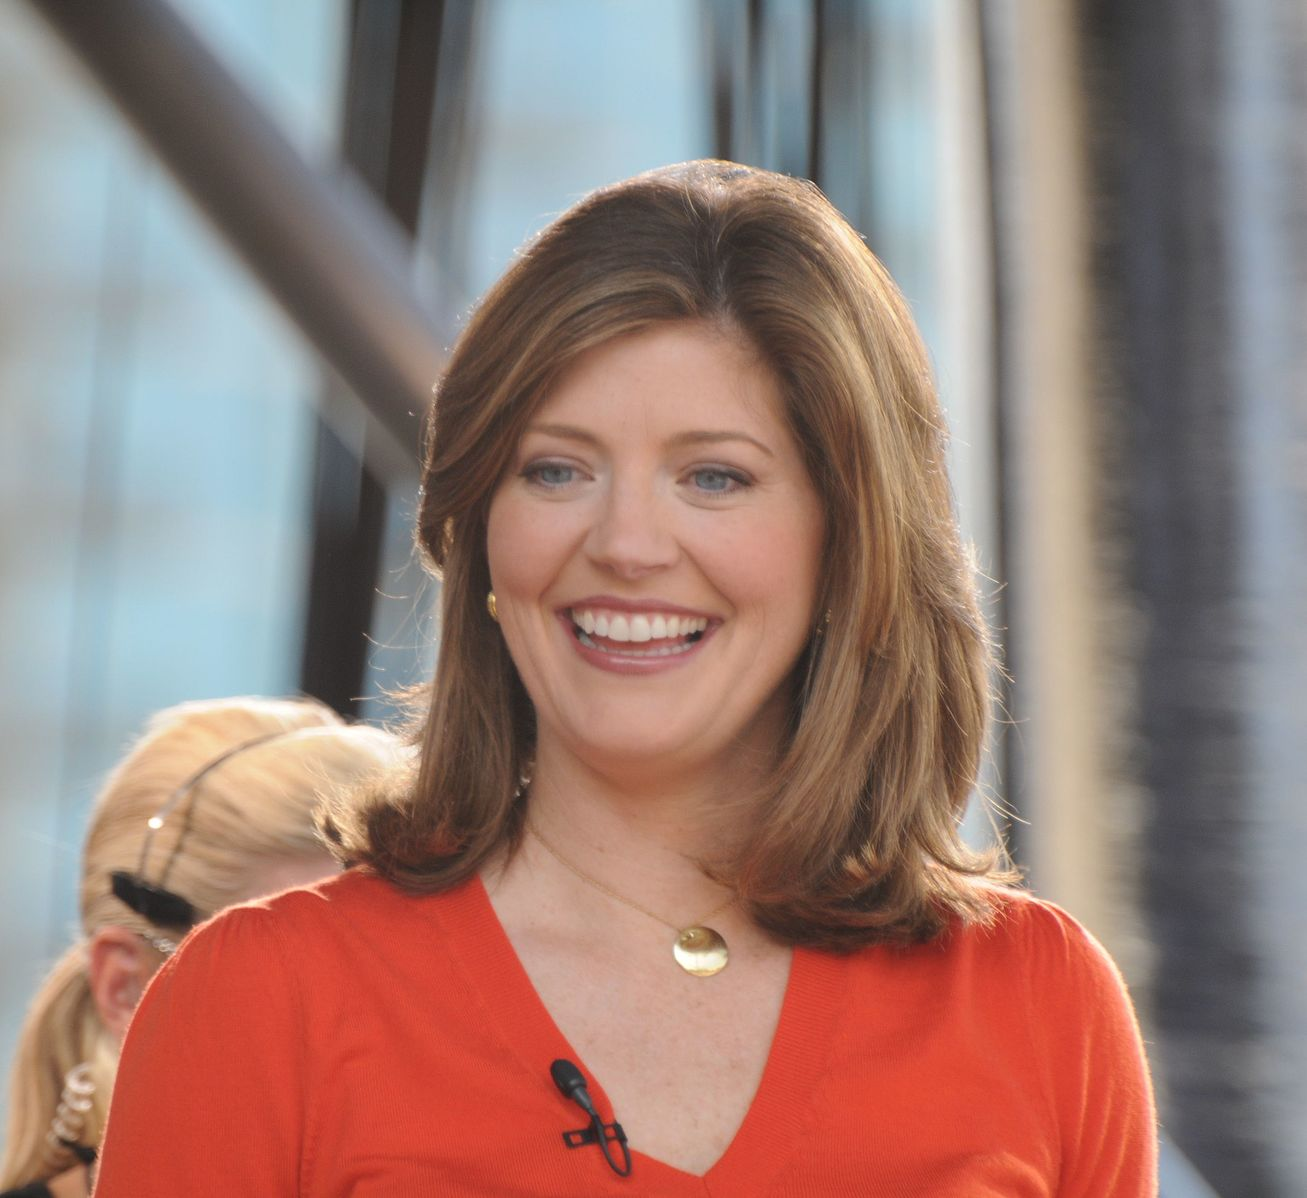 CBS, CBS This Morning, Nora O'Donnell, Facebook